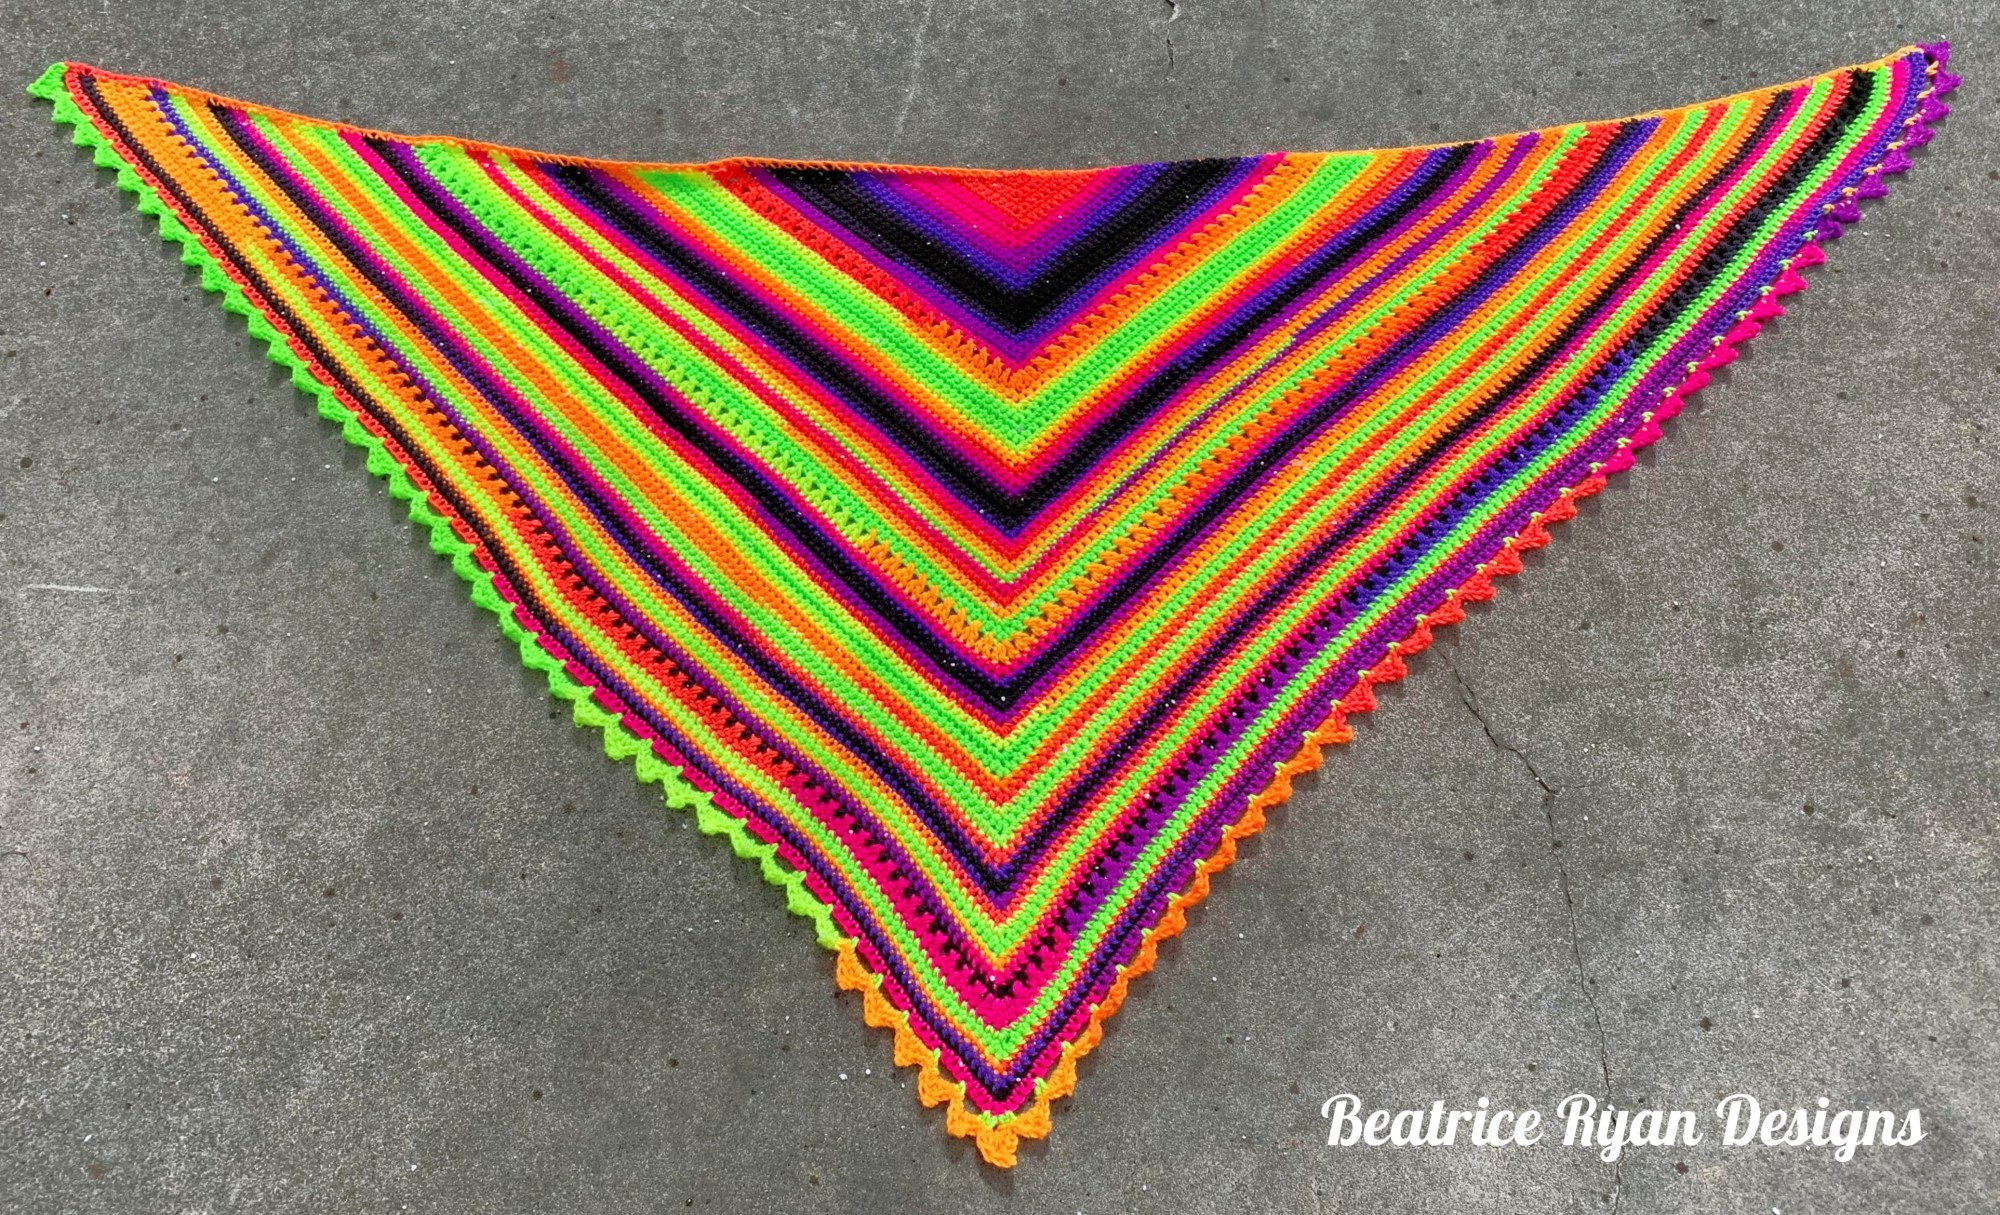 Beautifully-Bright-Triangle-Shawl